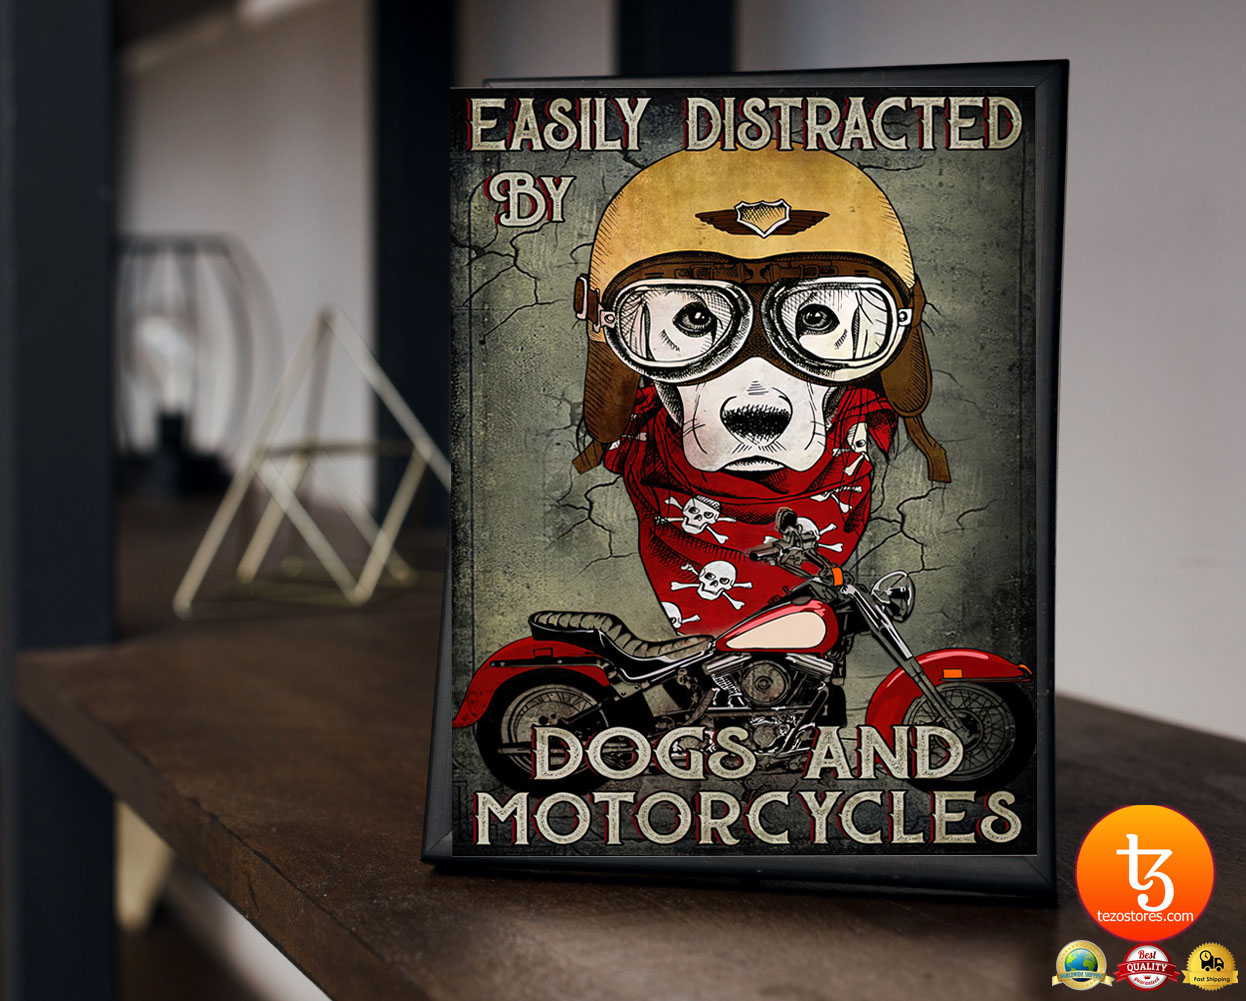 Easily distracted by dogs and motorcycles poster 2